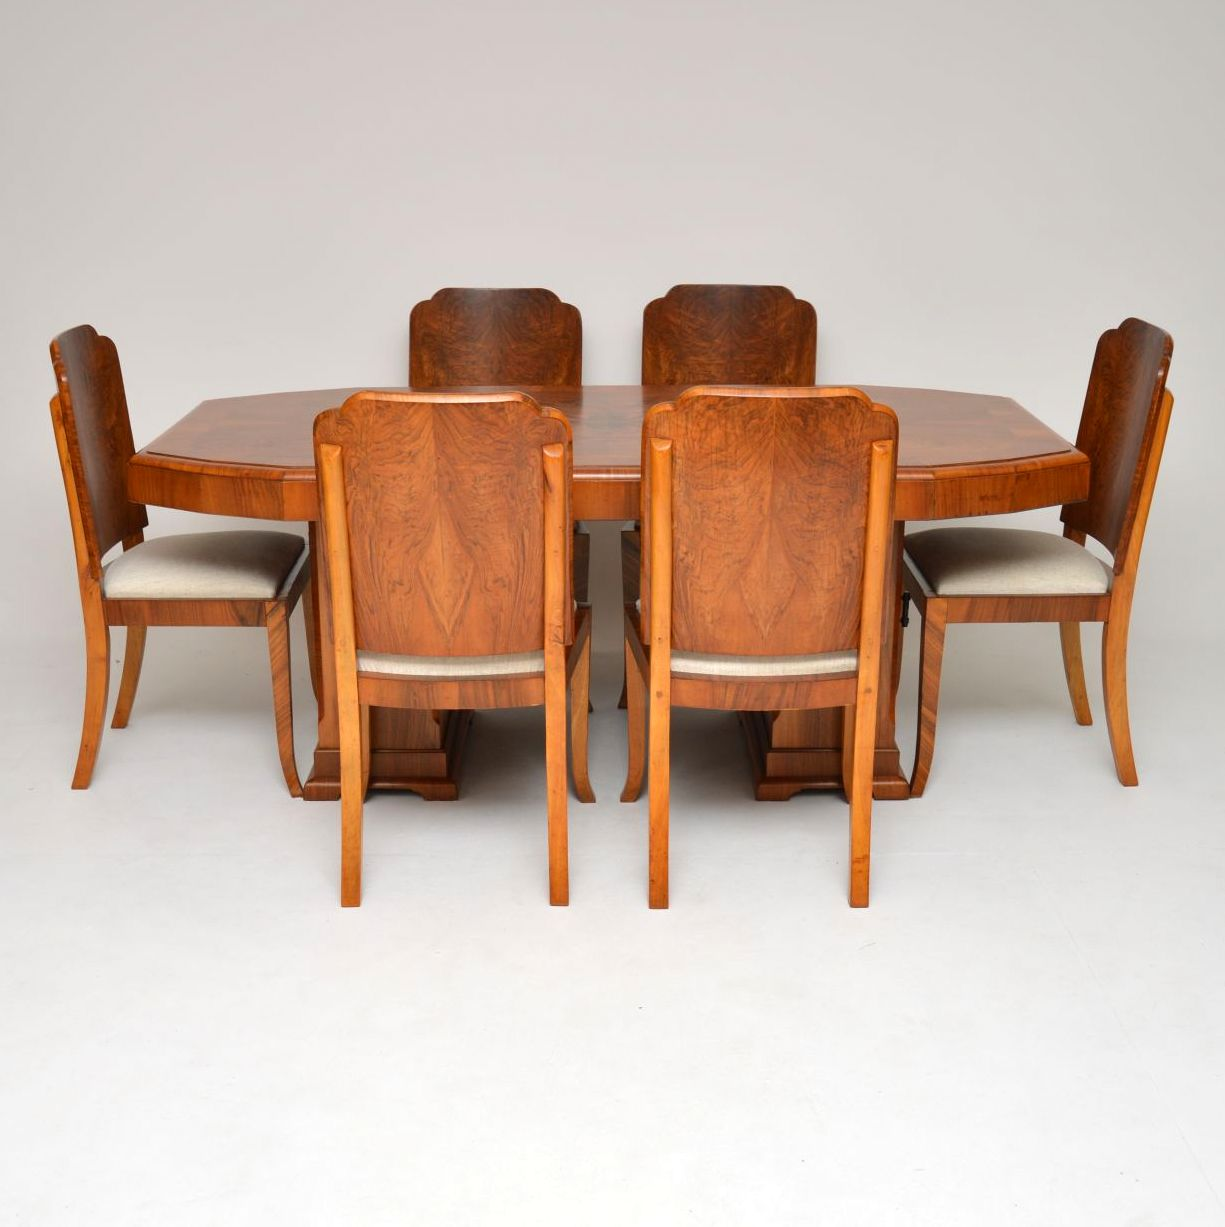 Art Deco Dining Chairs 1920 S Original Art Deco Walnut Dining Table Chairs